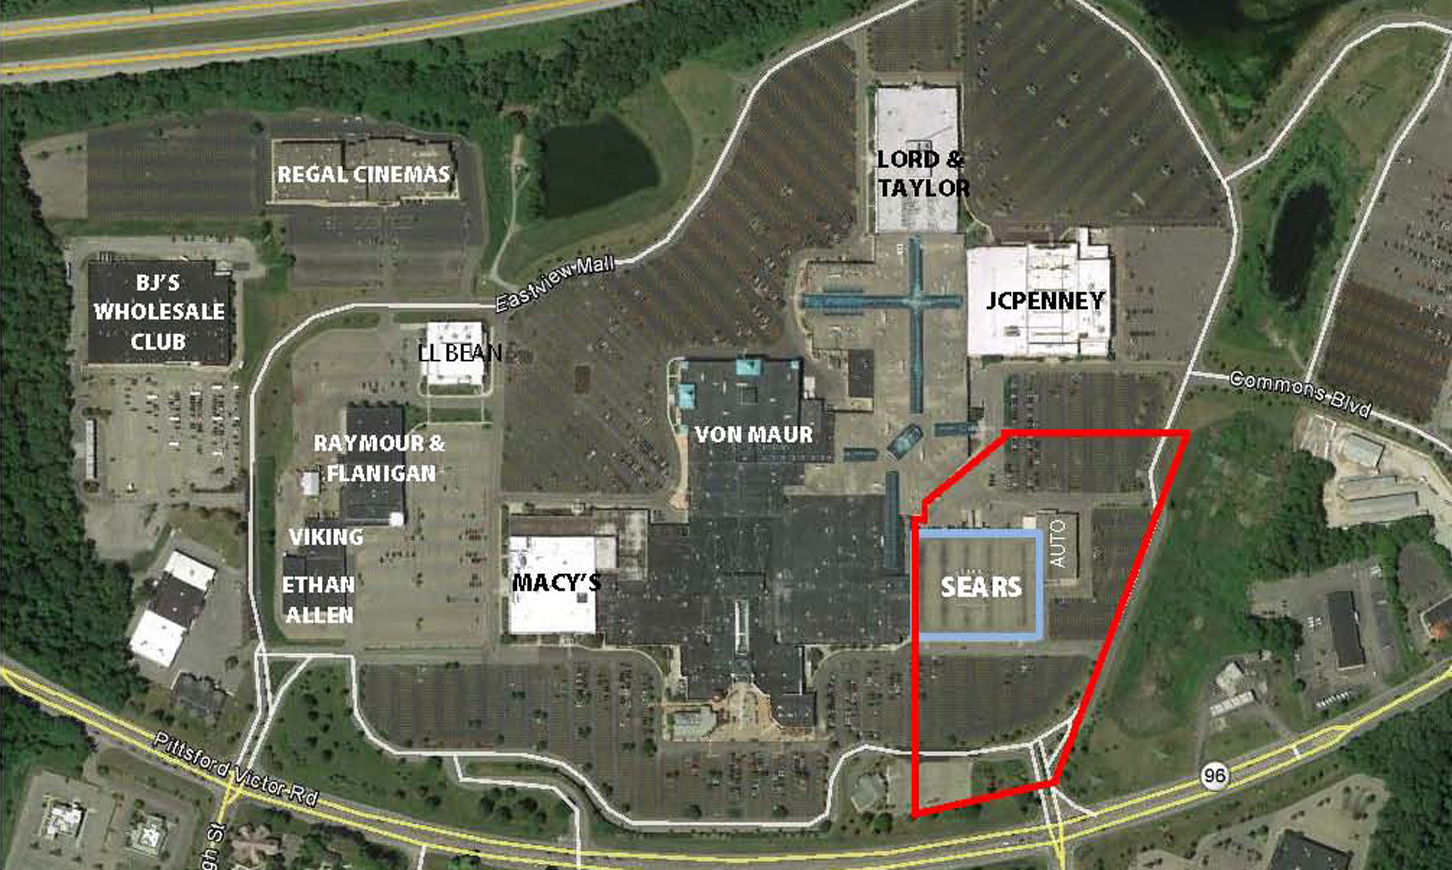 Eastview Mall Map At Eastview Mall | Seritage Eastview Mall Map